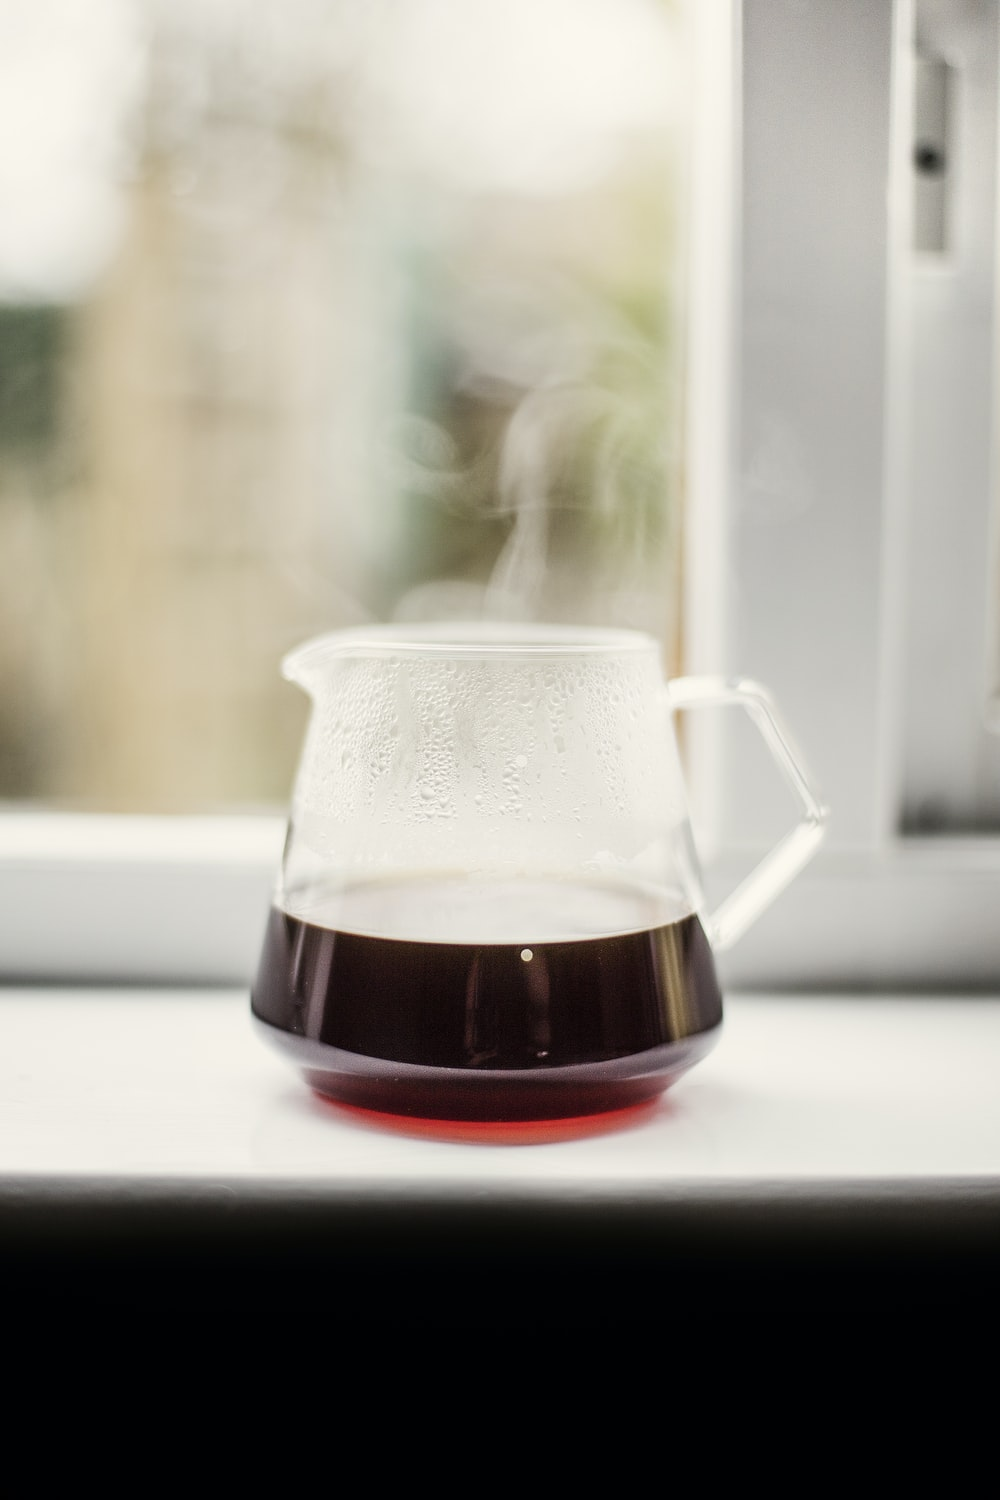 clear glass pitcher with brown liquid